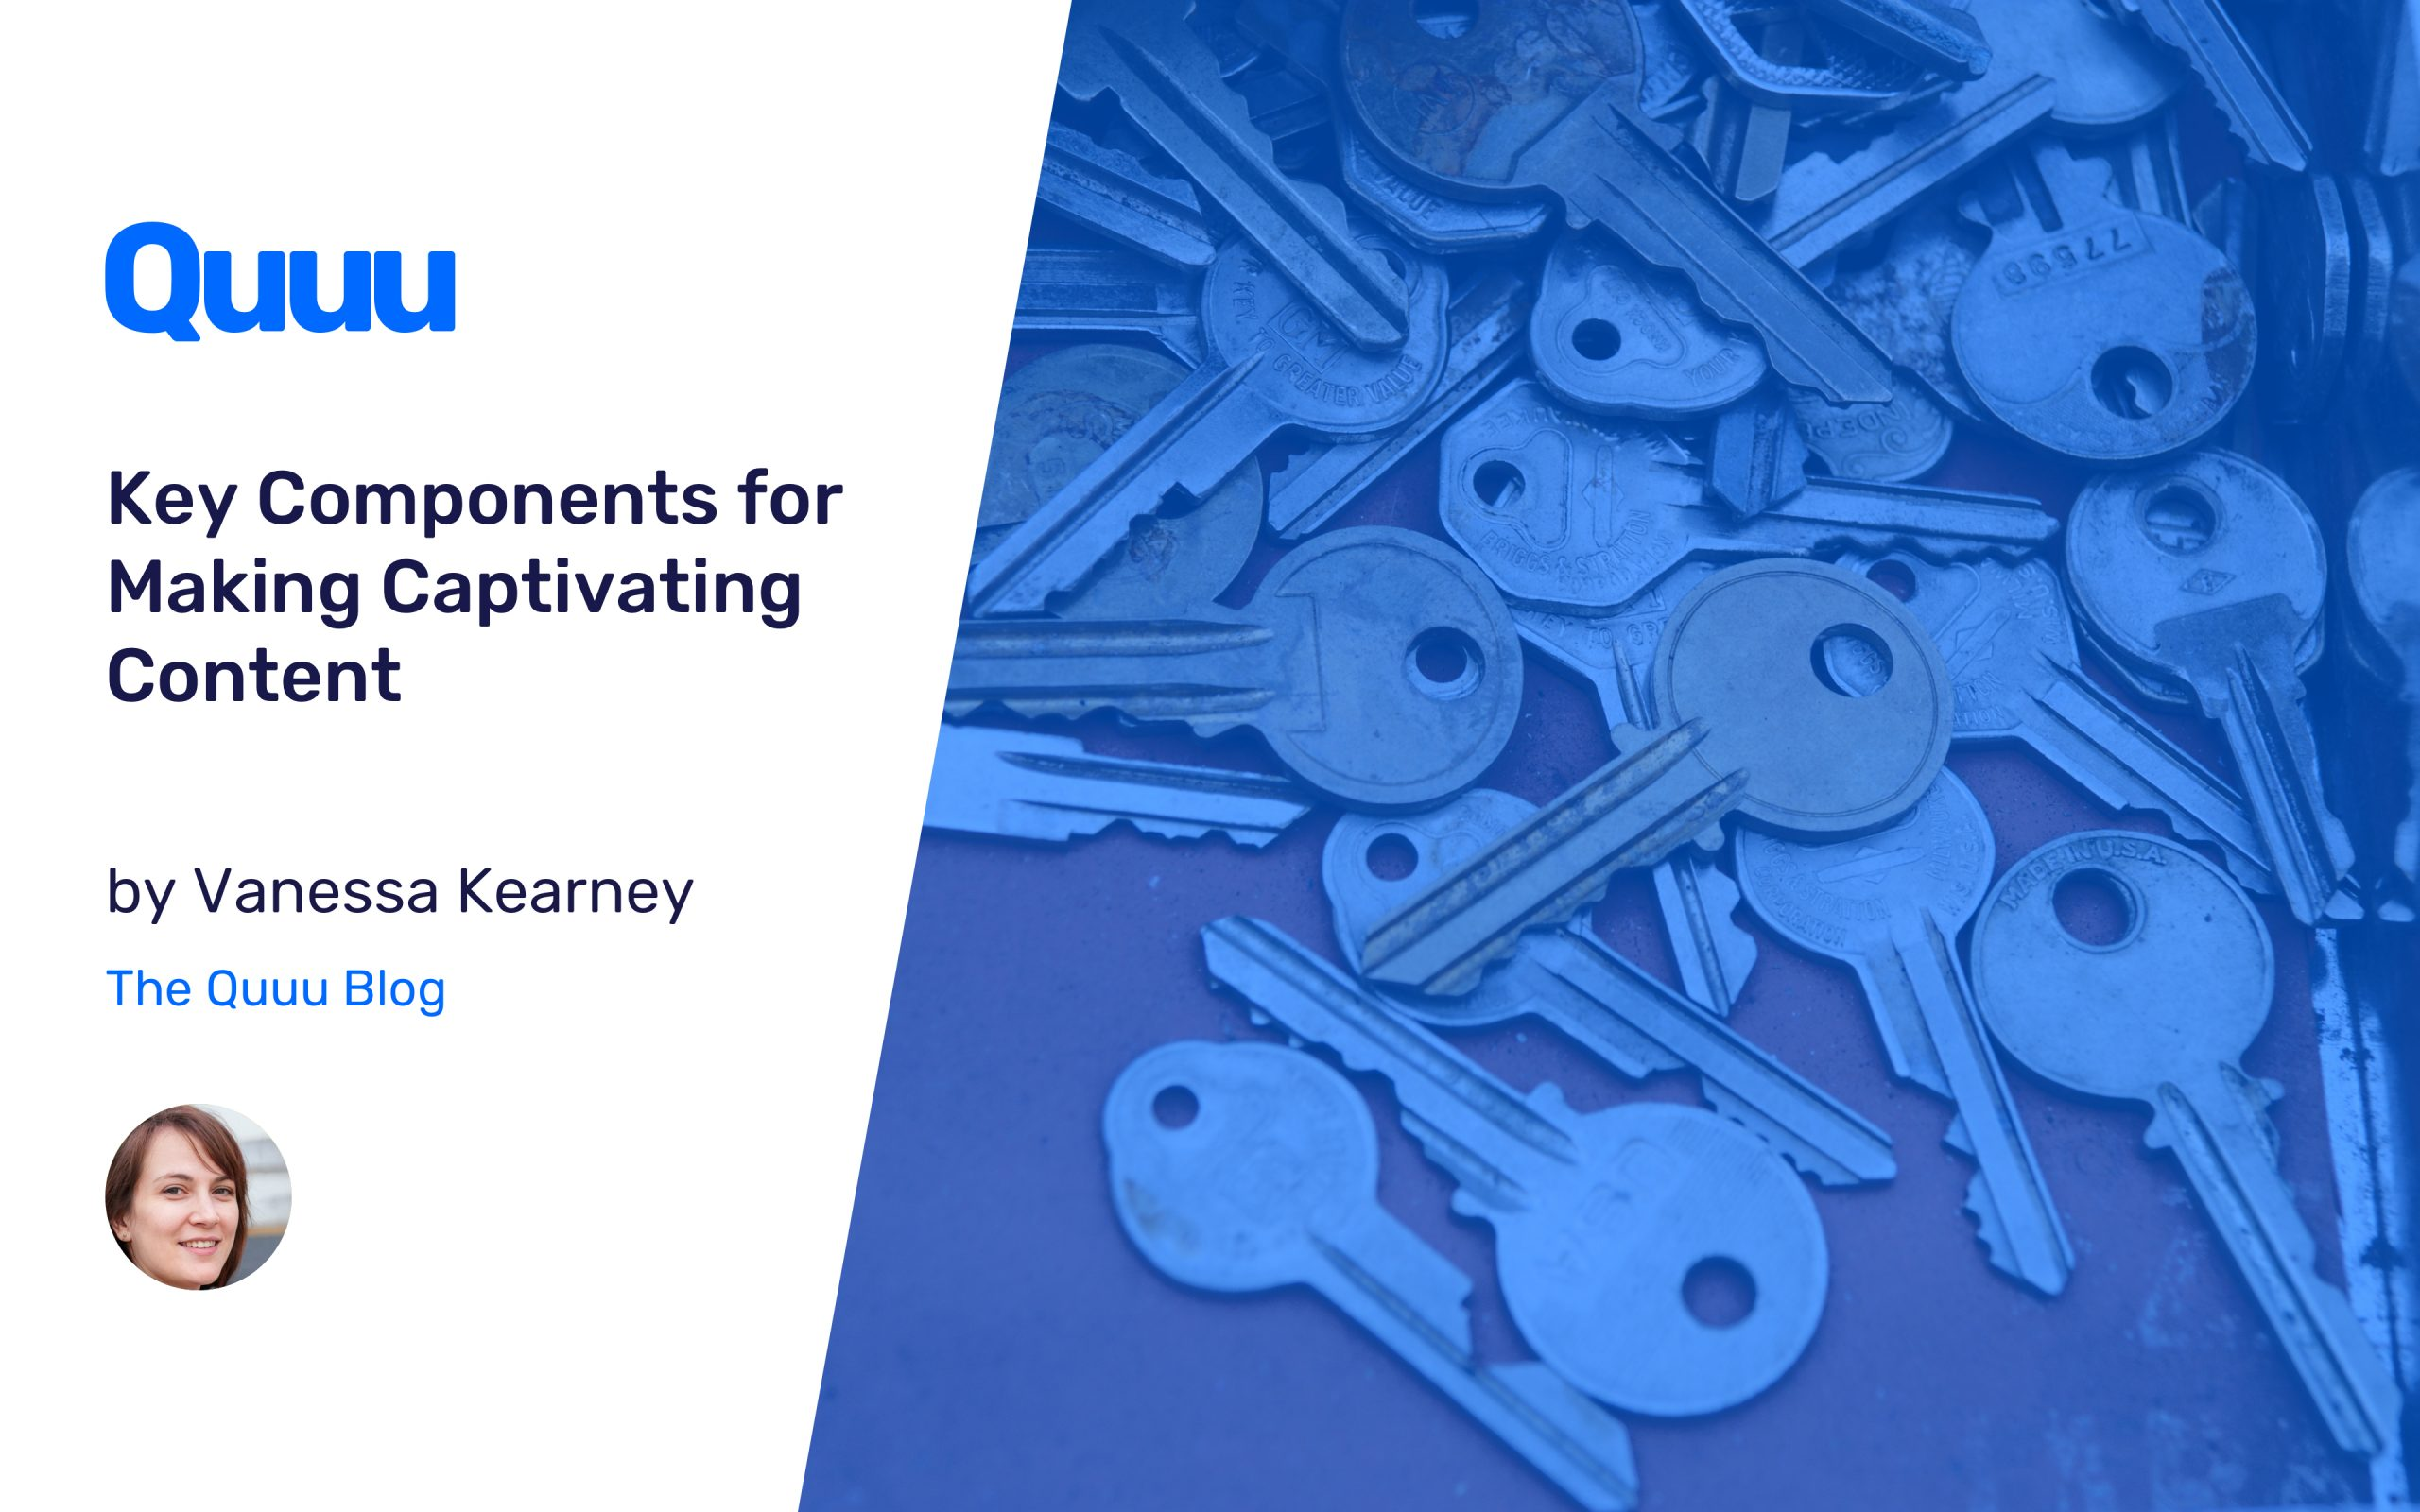 Key Components for Making Captivating Content